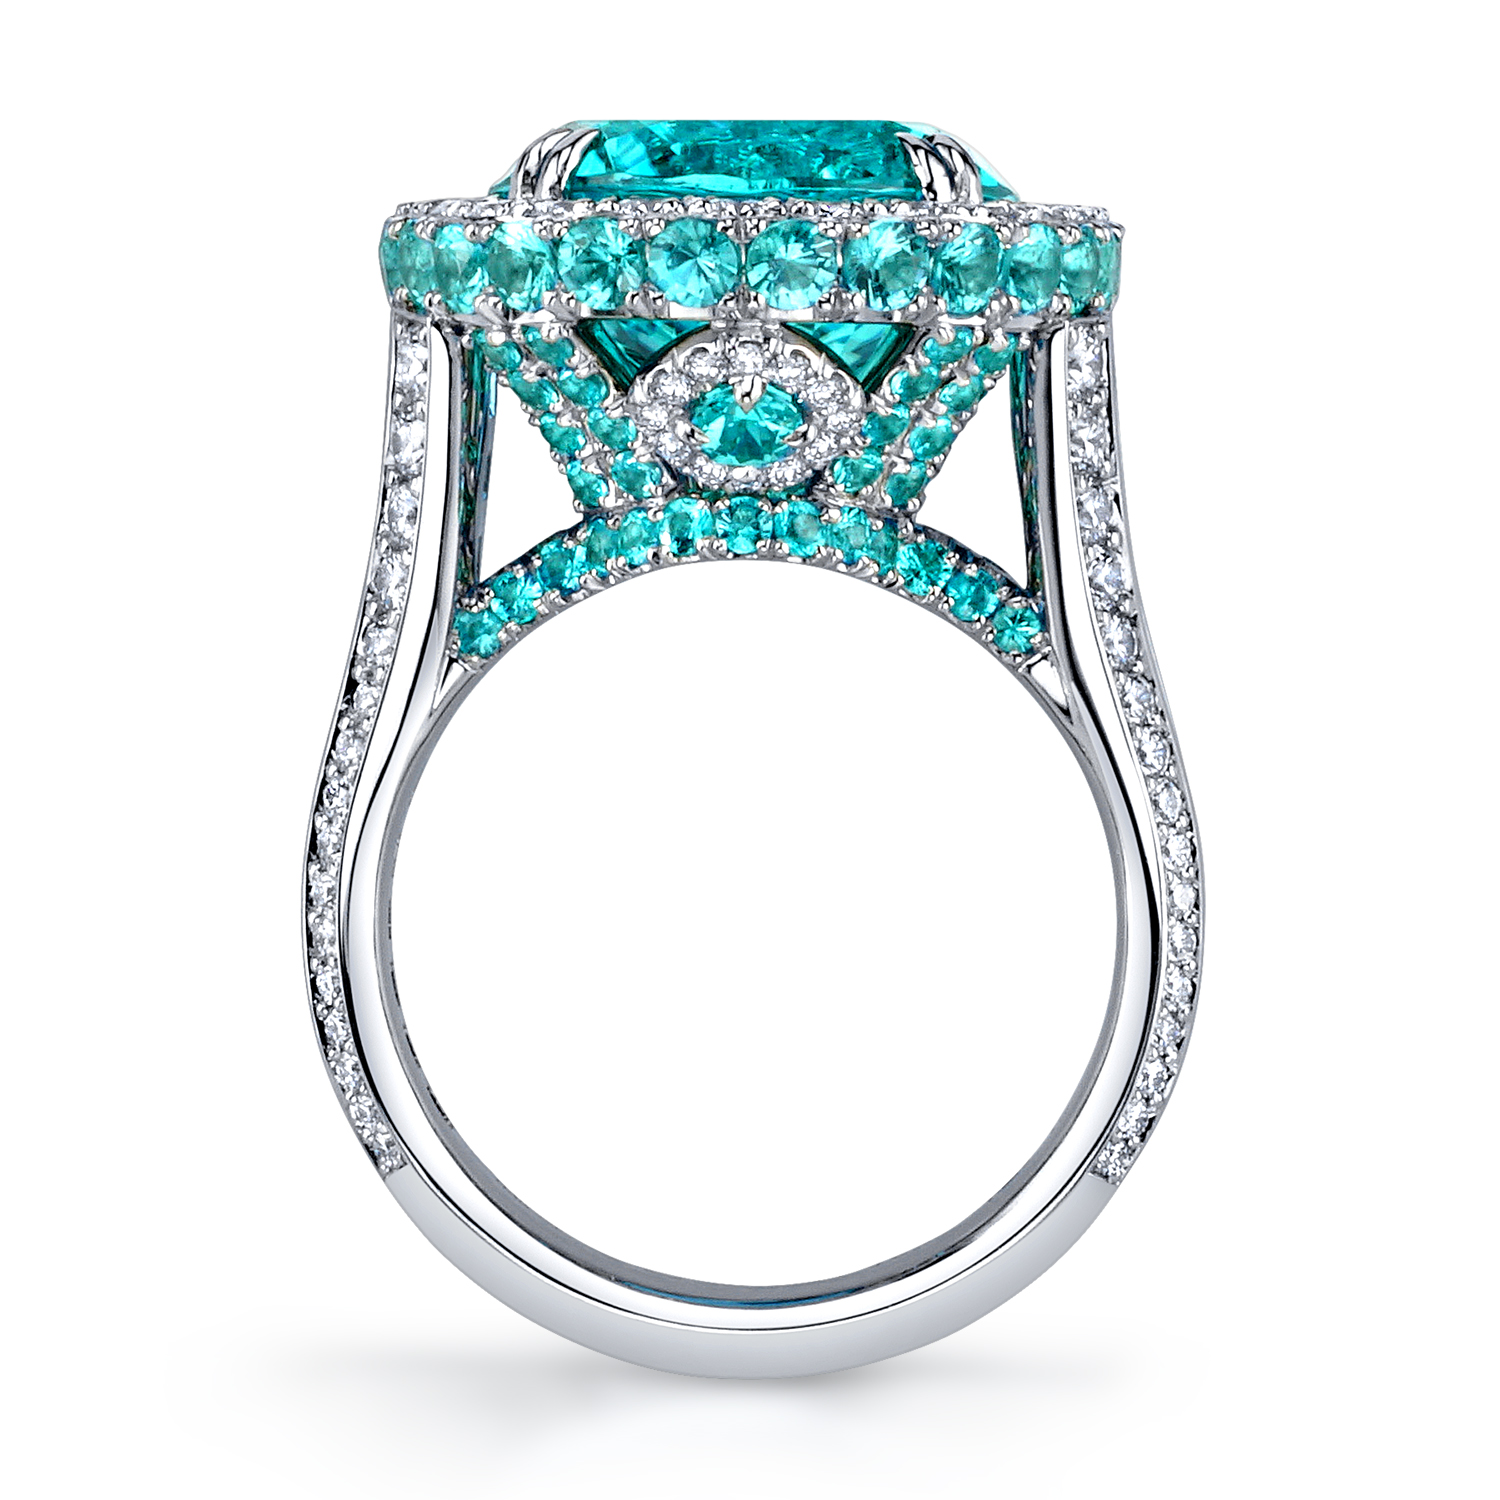 ring, gold, diamonds, paraiba, jewelry photography, beautiful ring